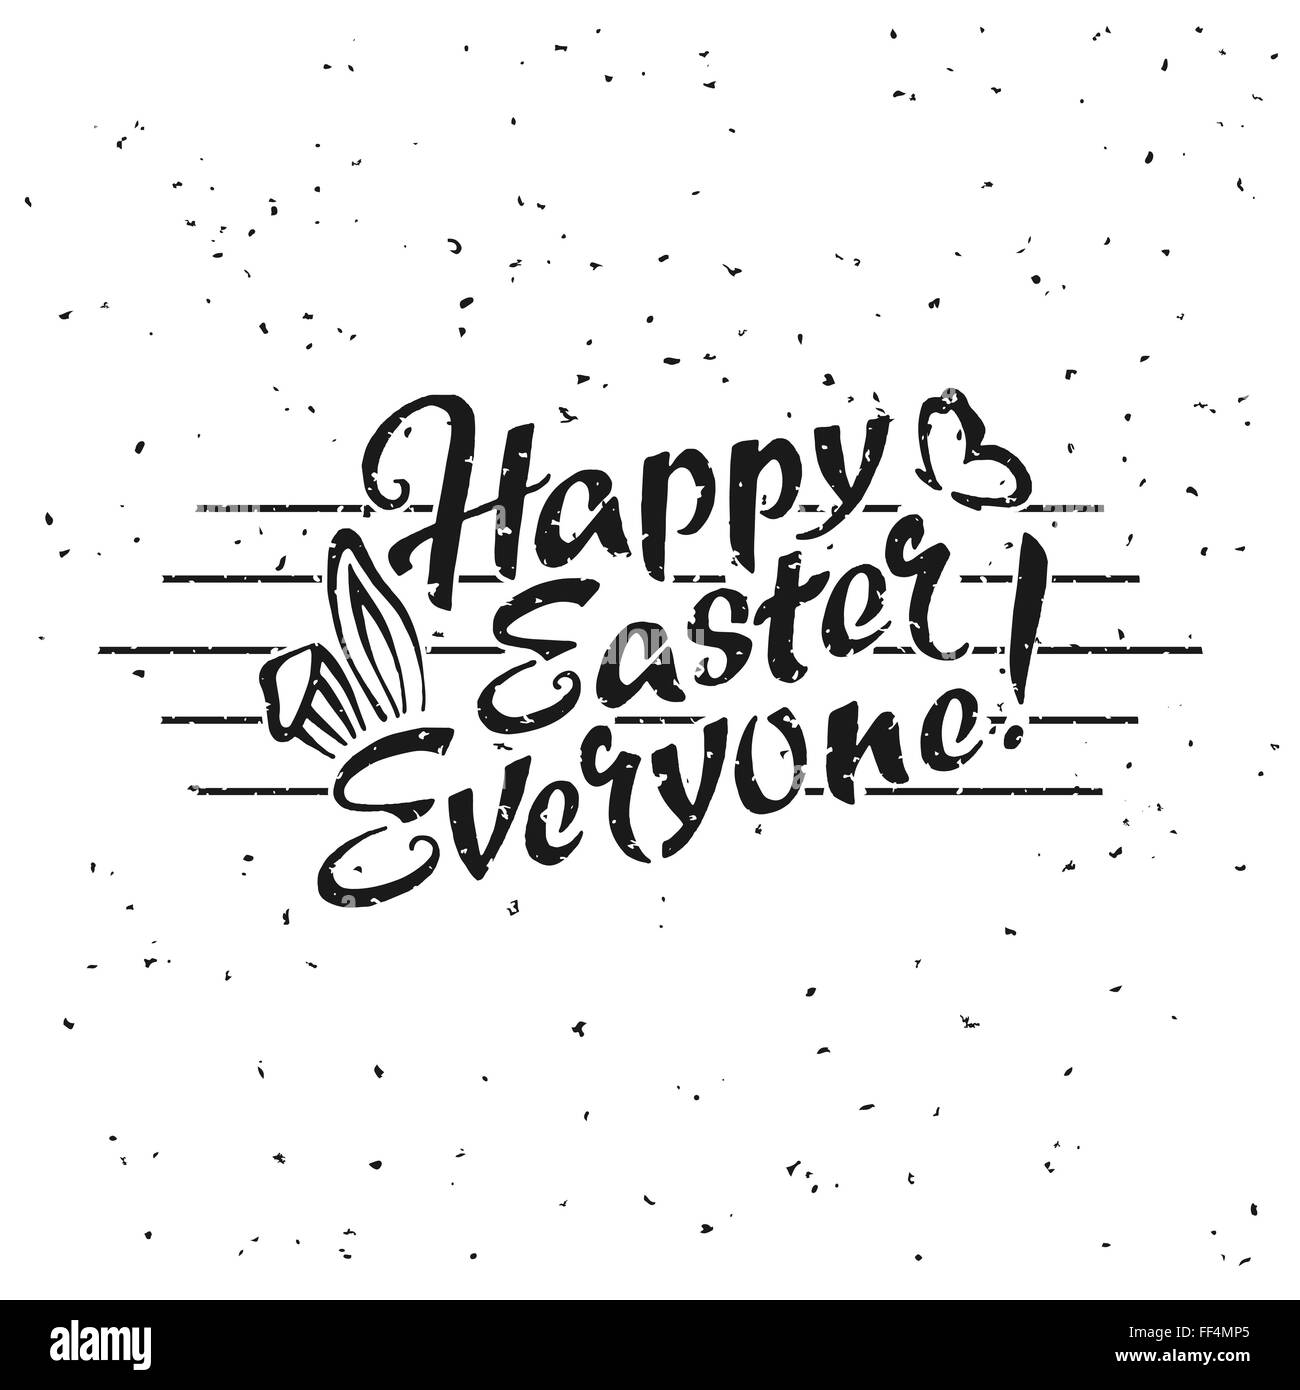 Happy Easter Everyone hand drawn lettering over white background for your design - Stock Image